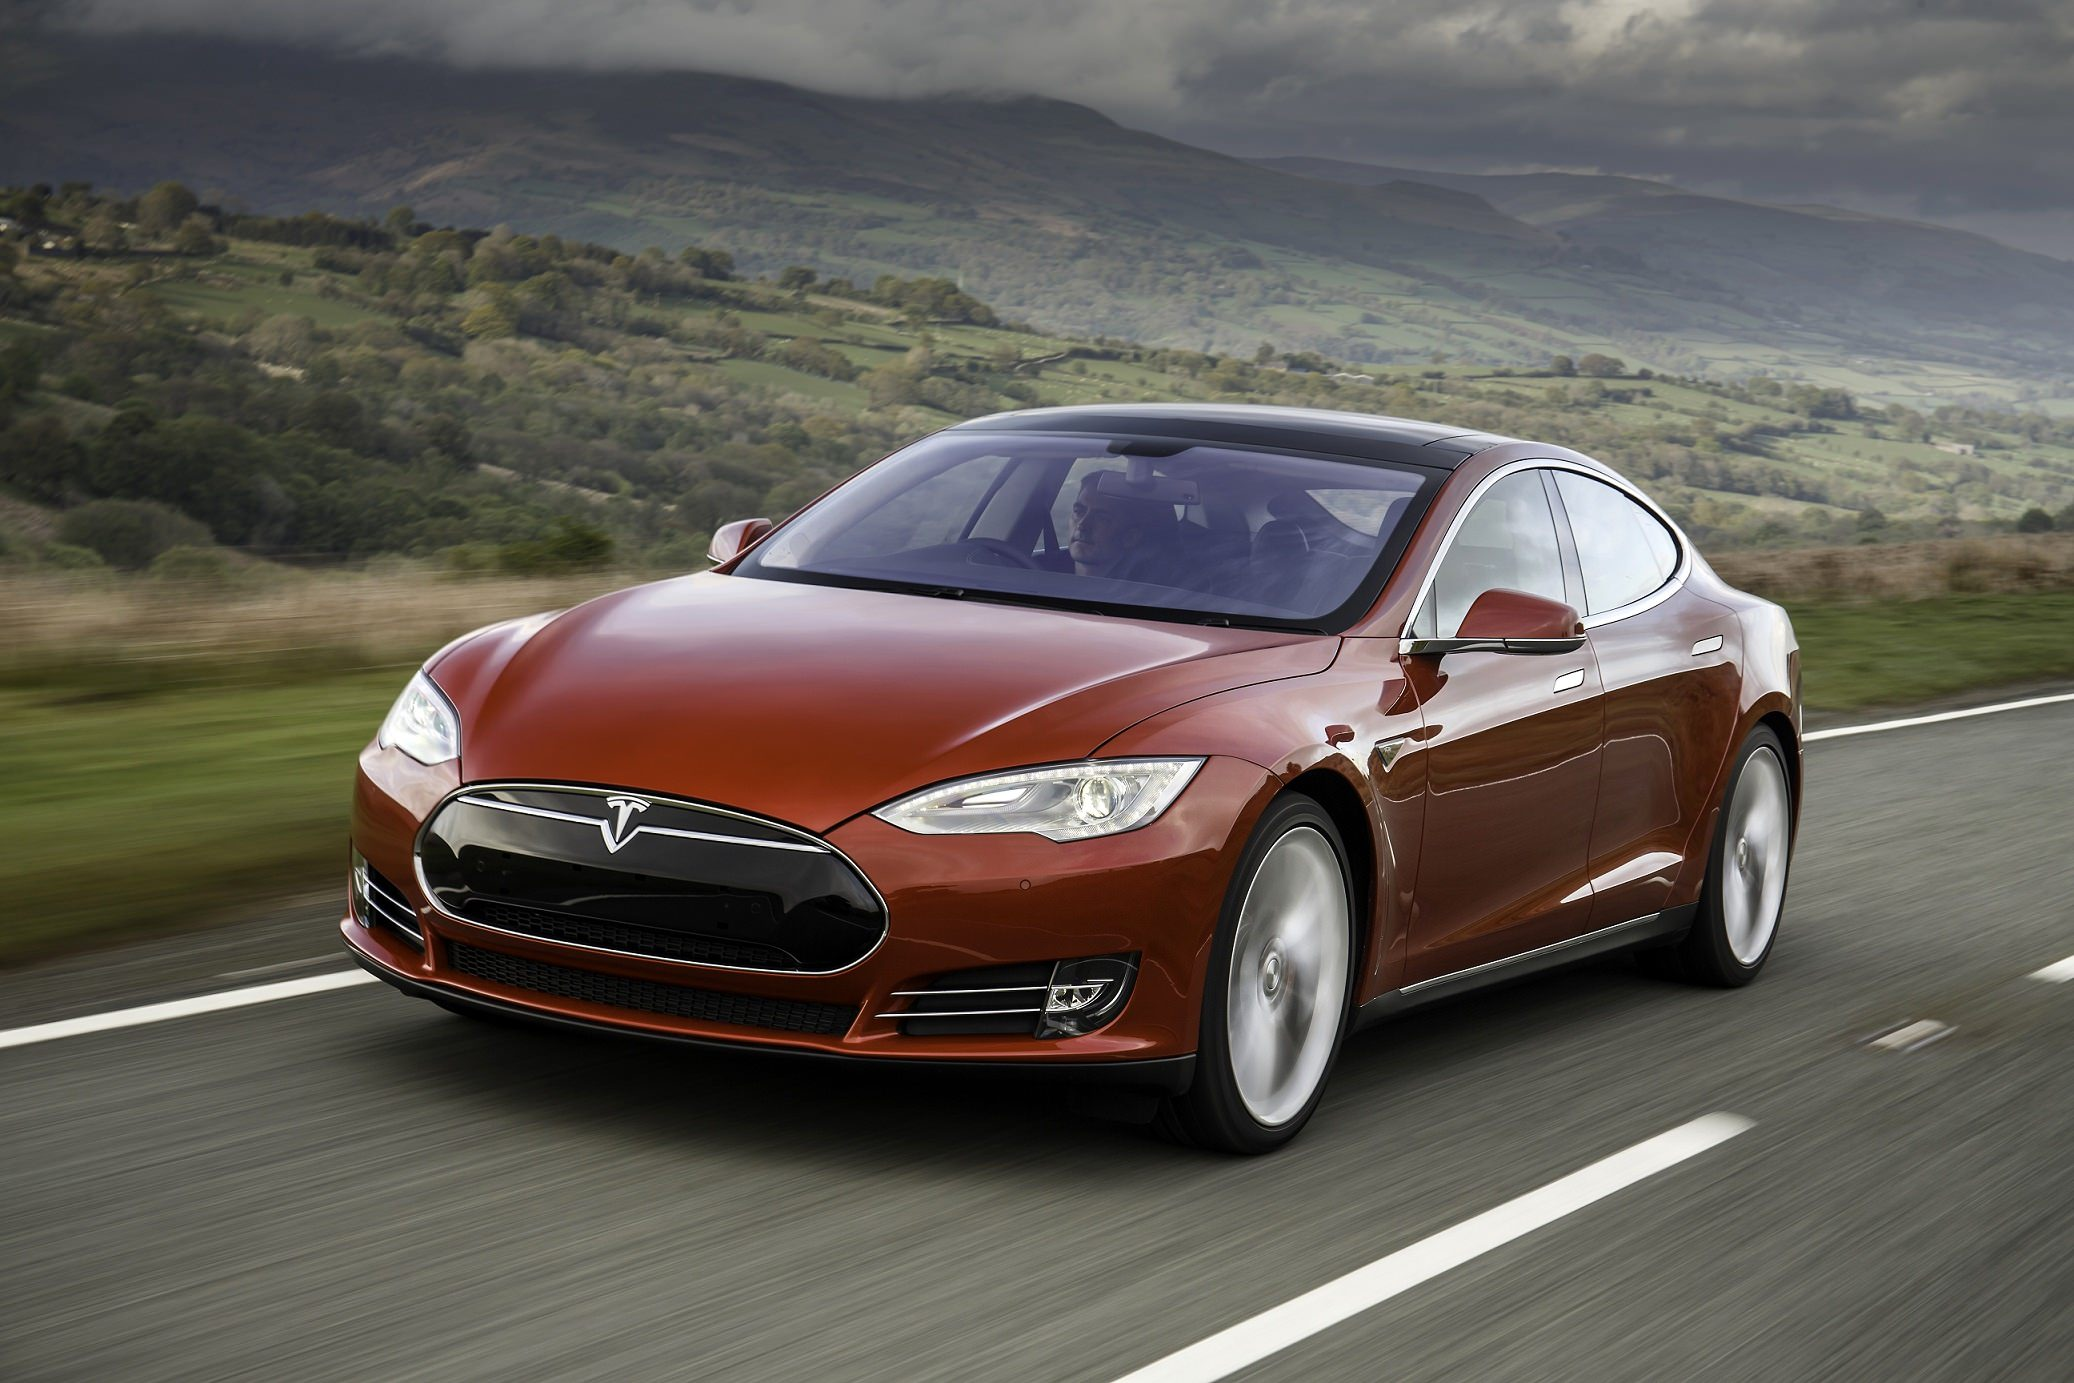 image of a red tesla car exterior